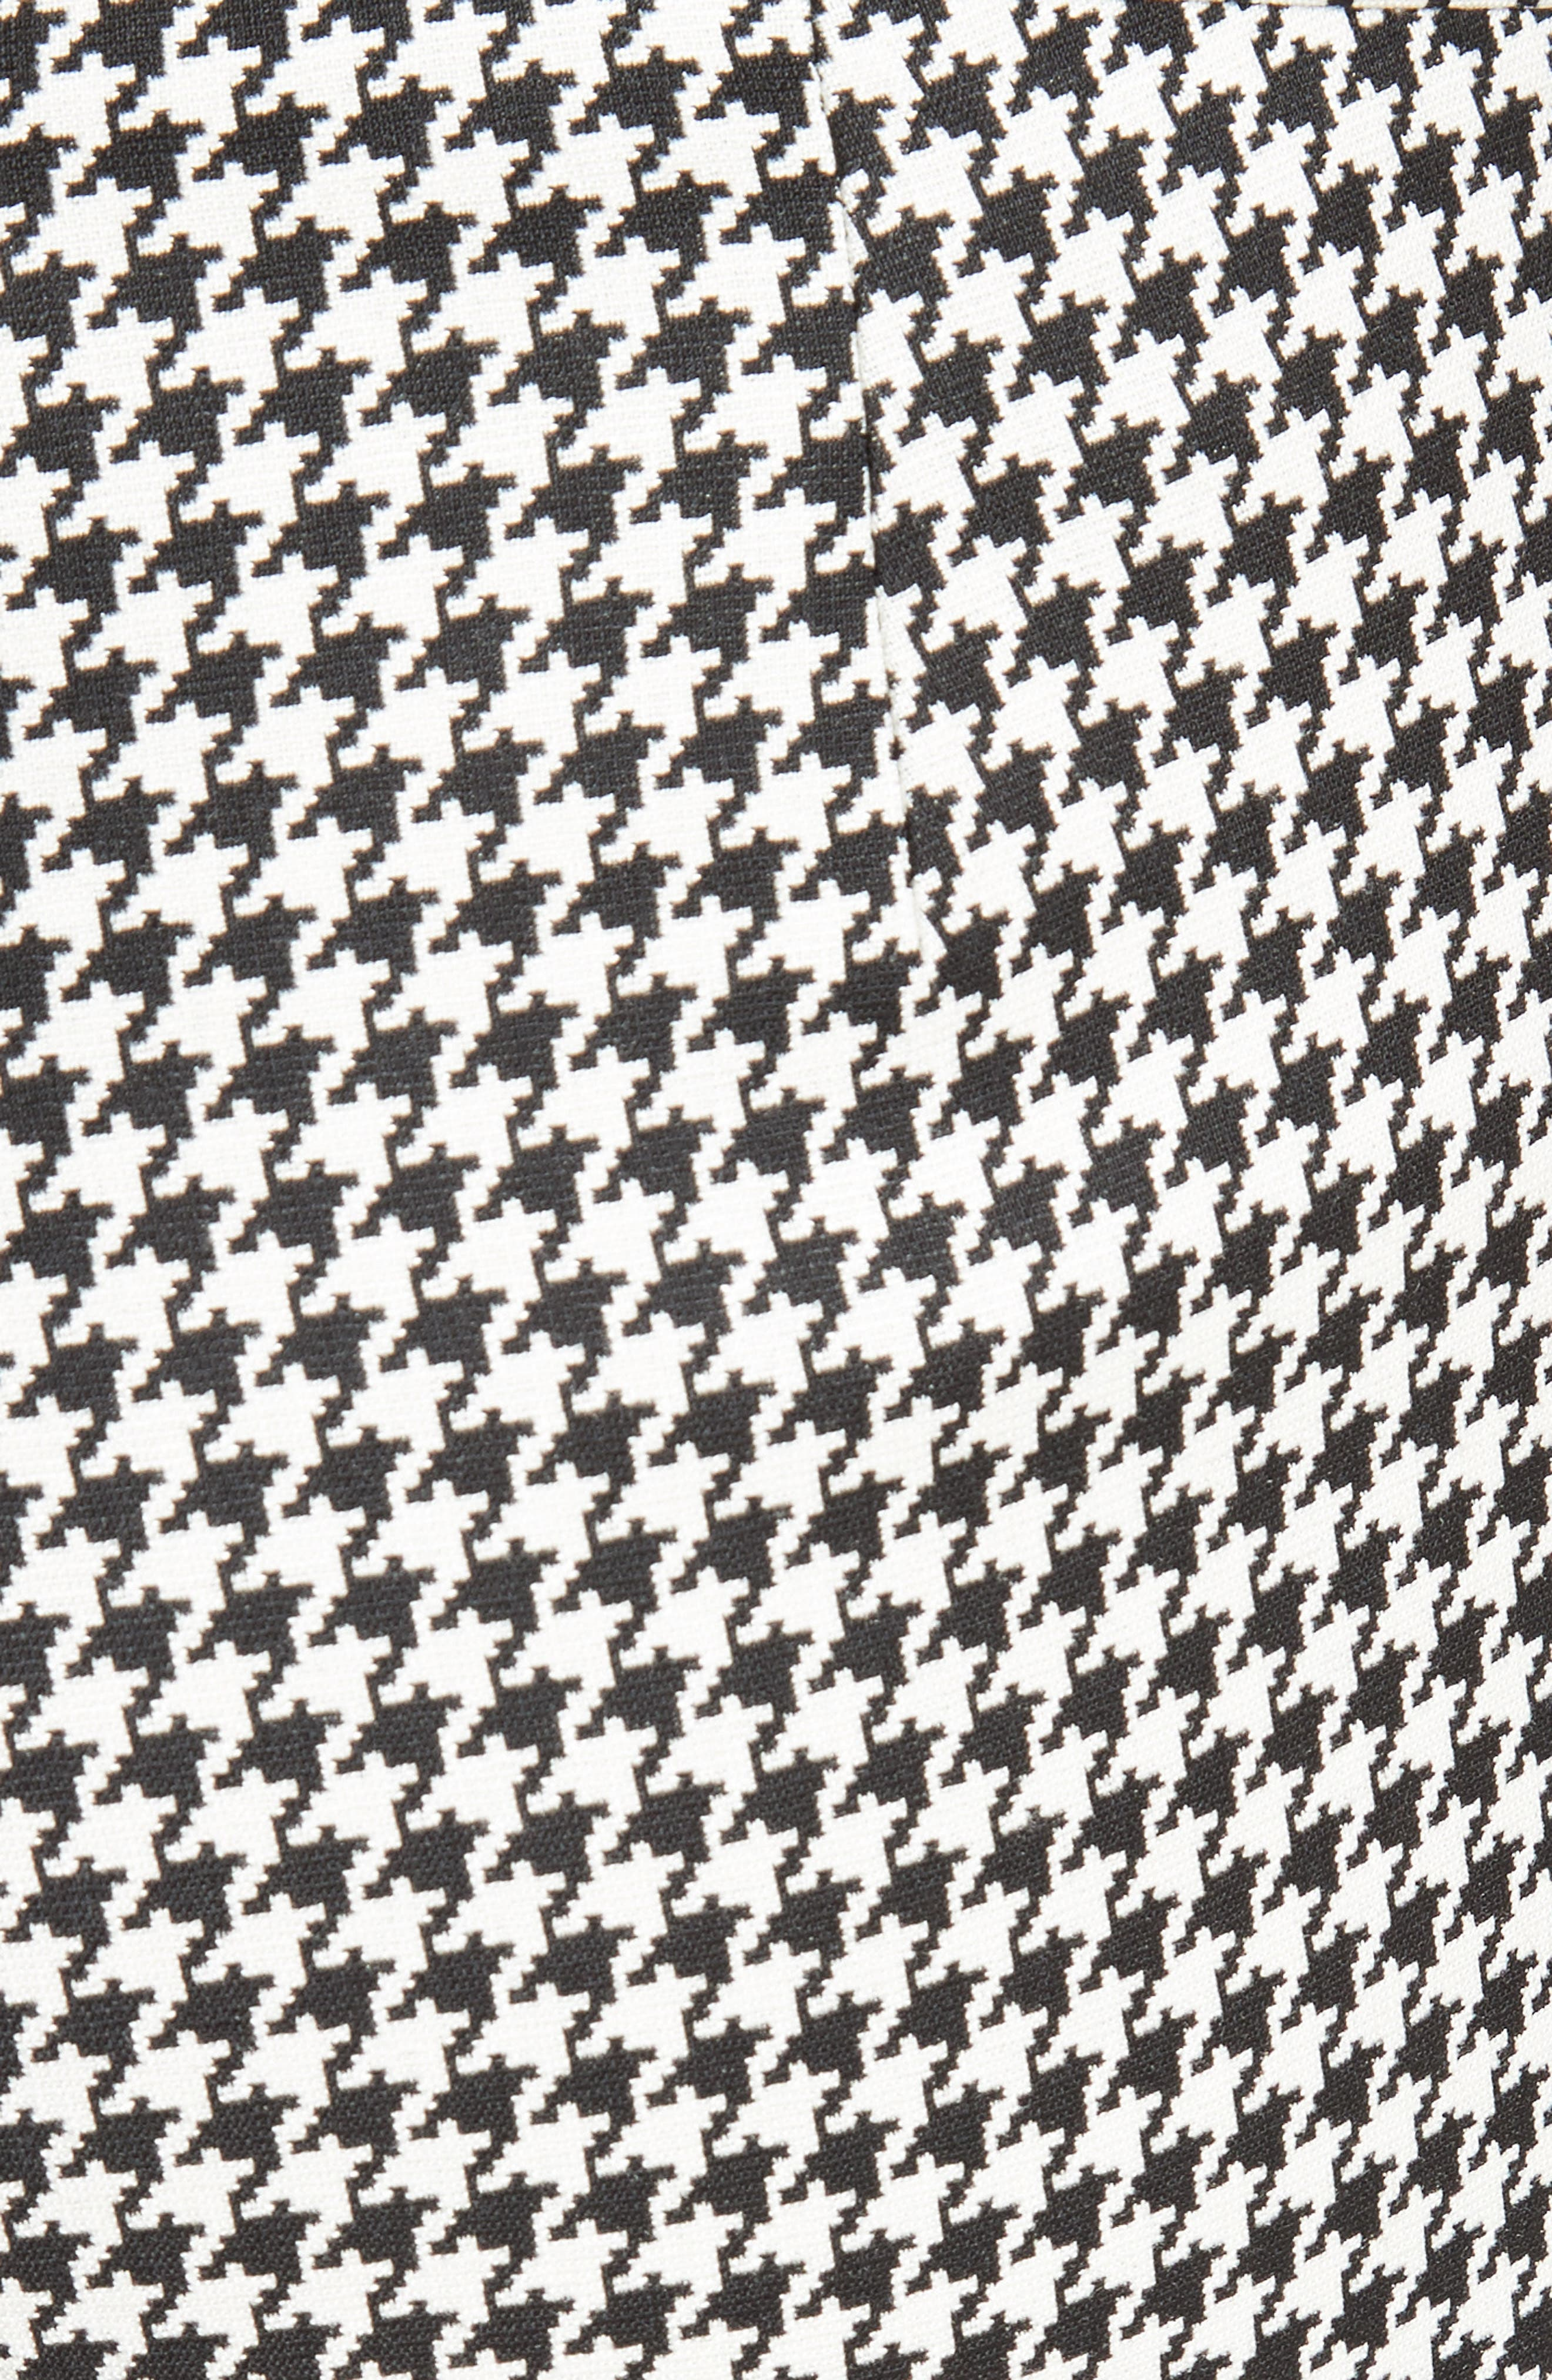 Astrale Houndstooth Wool Blend Pants,                             Alternate thumbnail 5, color,                             001